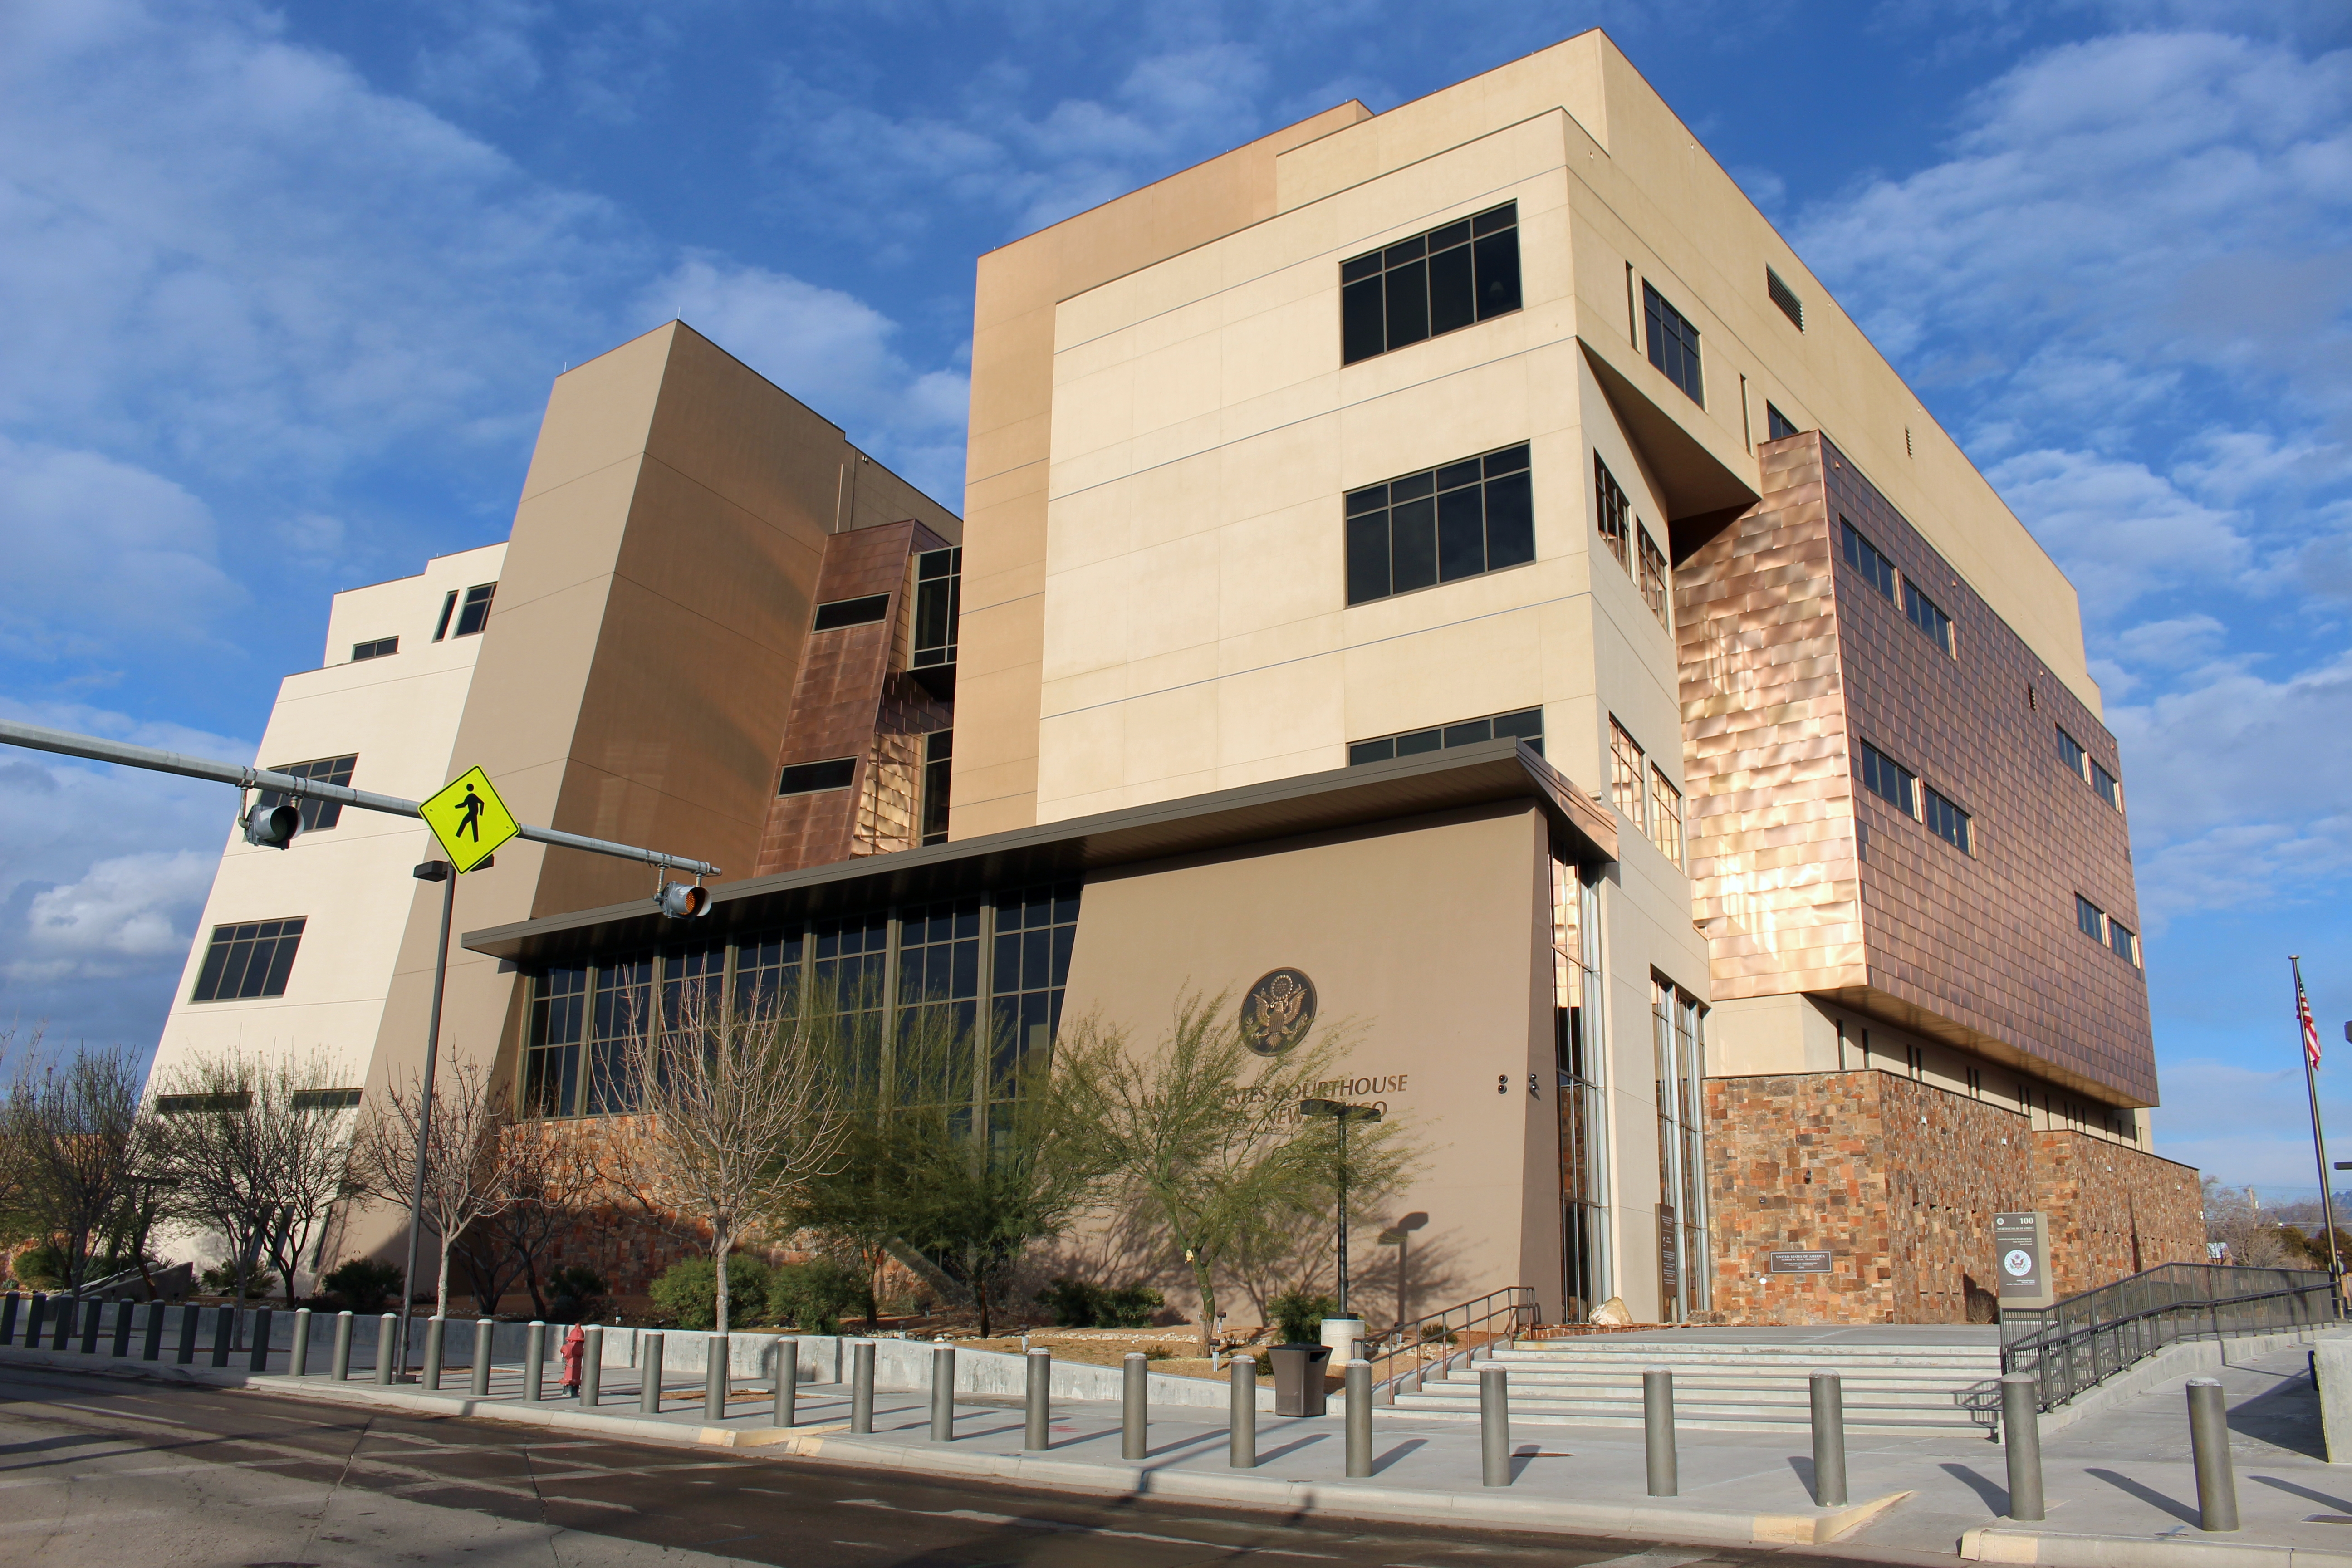 U.S. Courthouse, Las Cruces, NM